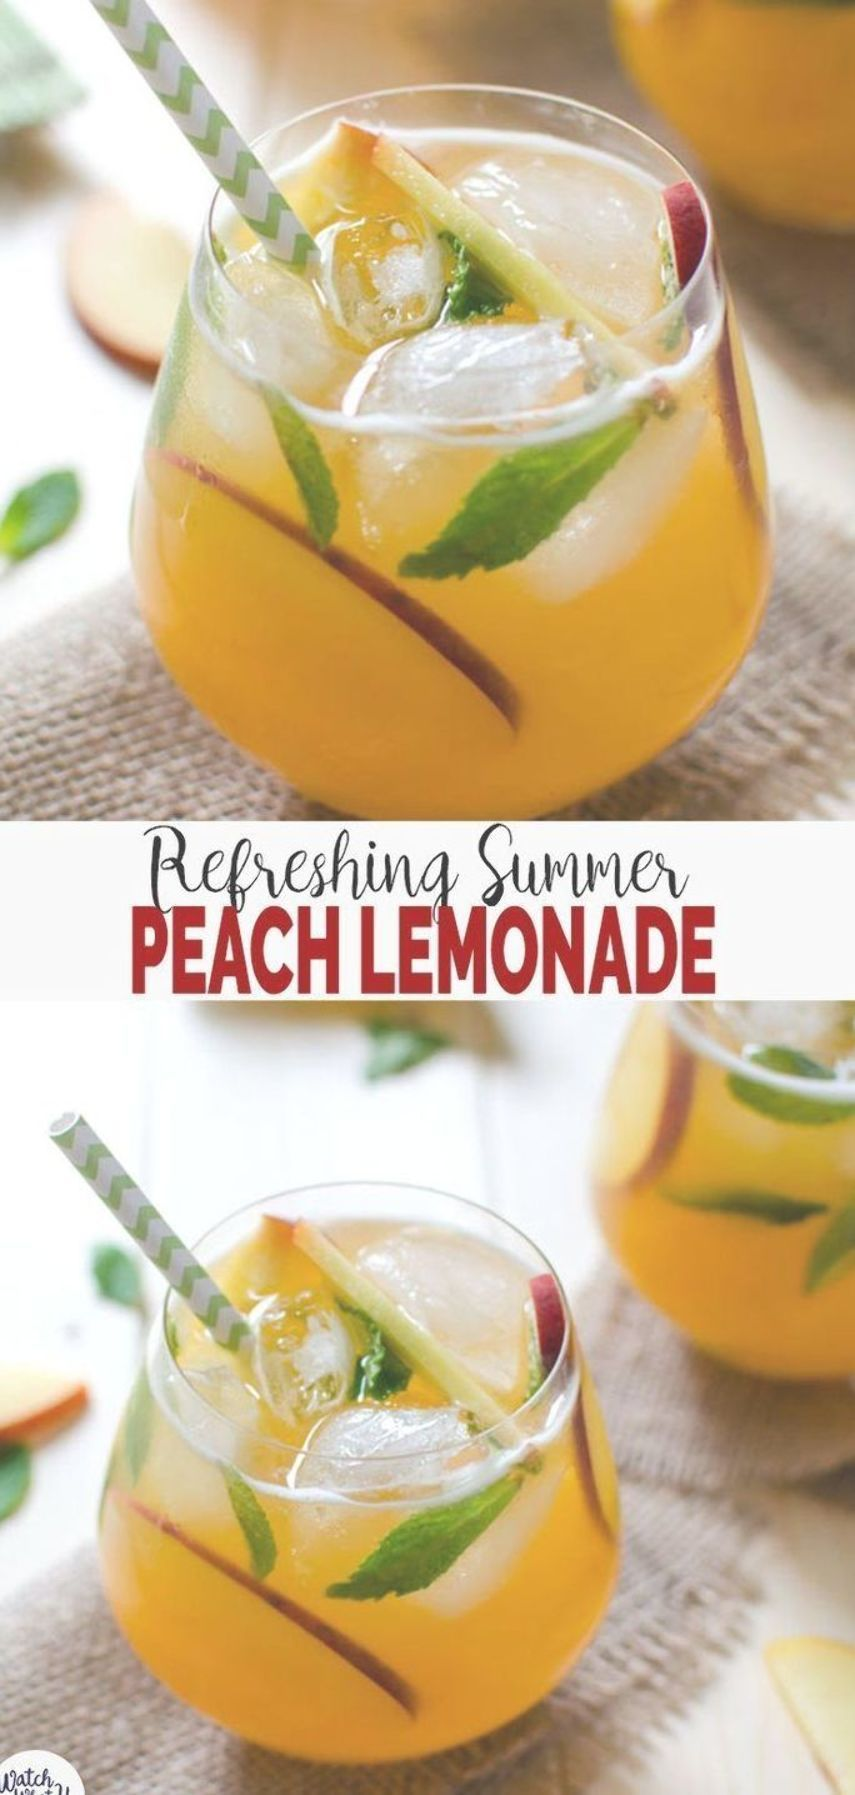 Try this refreshing easy peach lemonade recipe to enjoy utilize fresh peaches of the season. Healthy naturally sweetened & non-alcoholic summer drink. | #watchwhatueat #lemonade #peaches #nonalcoholic #healthydrink #easylemonaderecipe